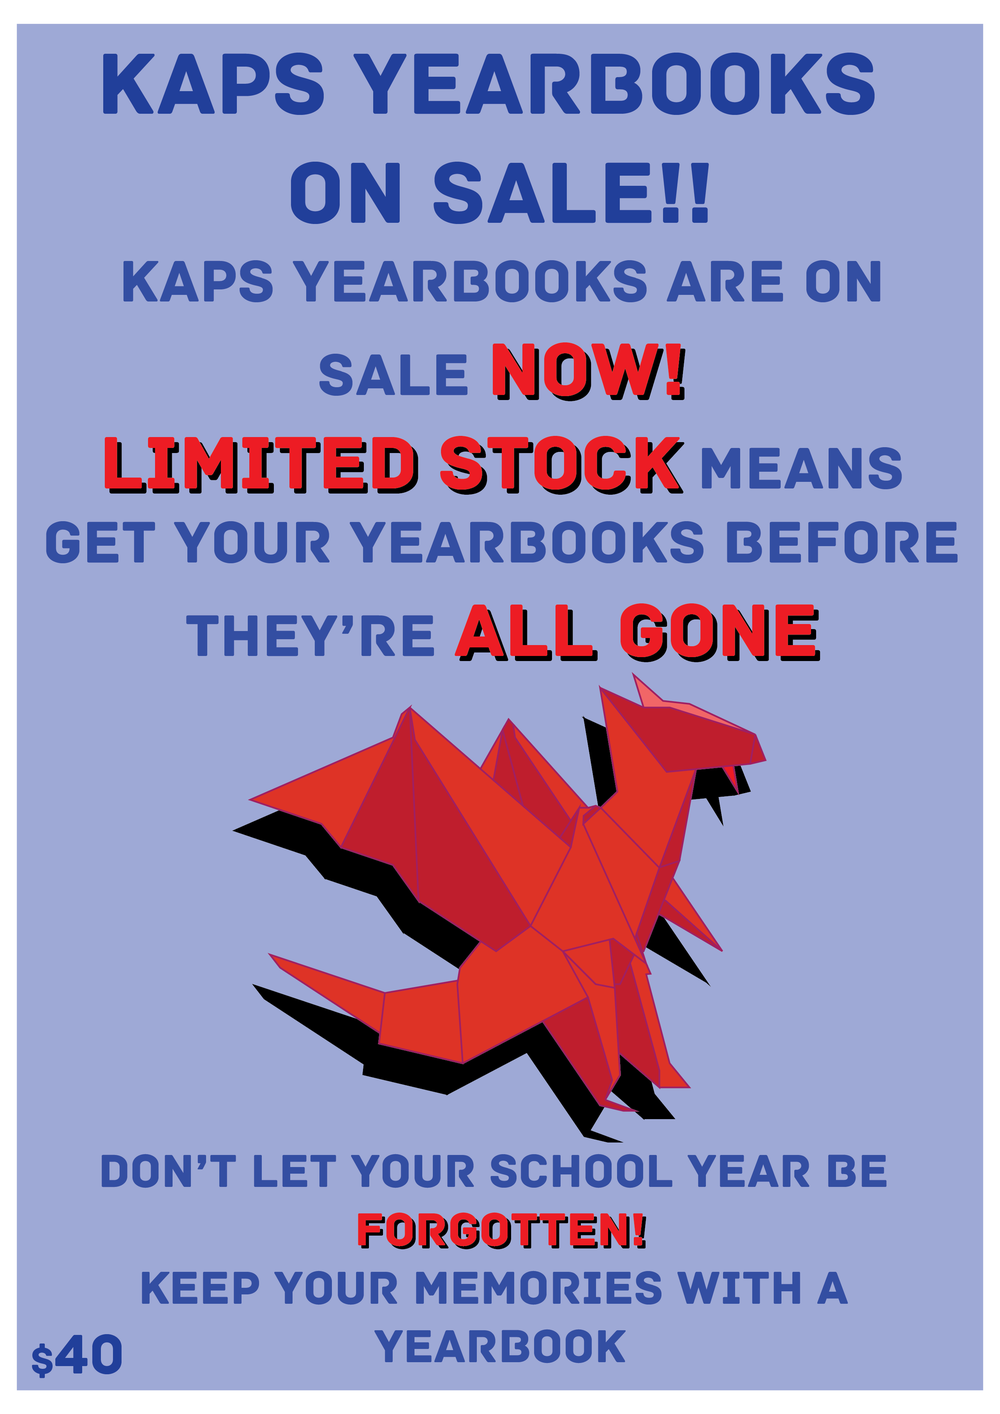 KAPS YEARBOOK SALE POSTER-01.png